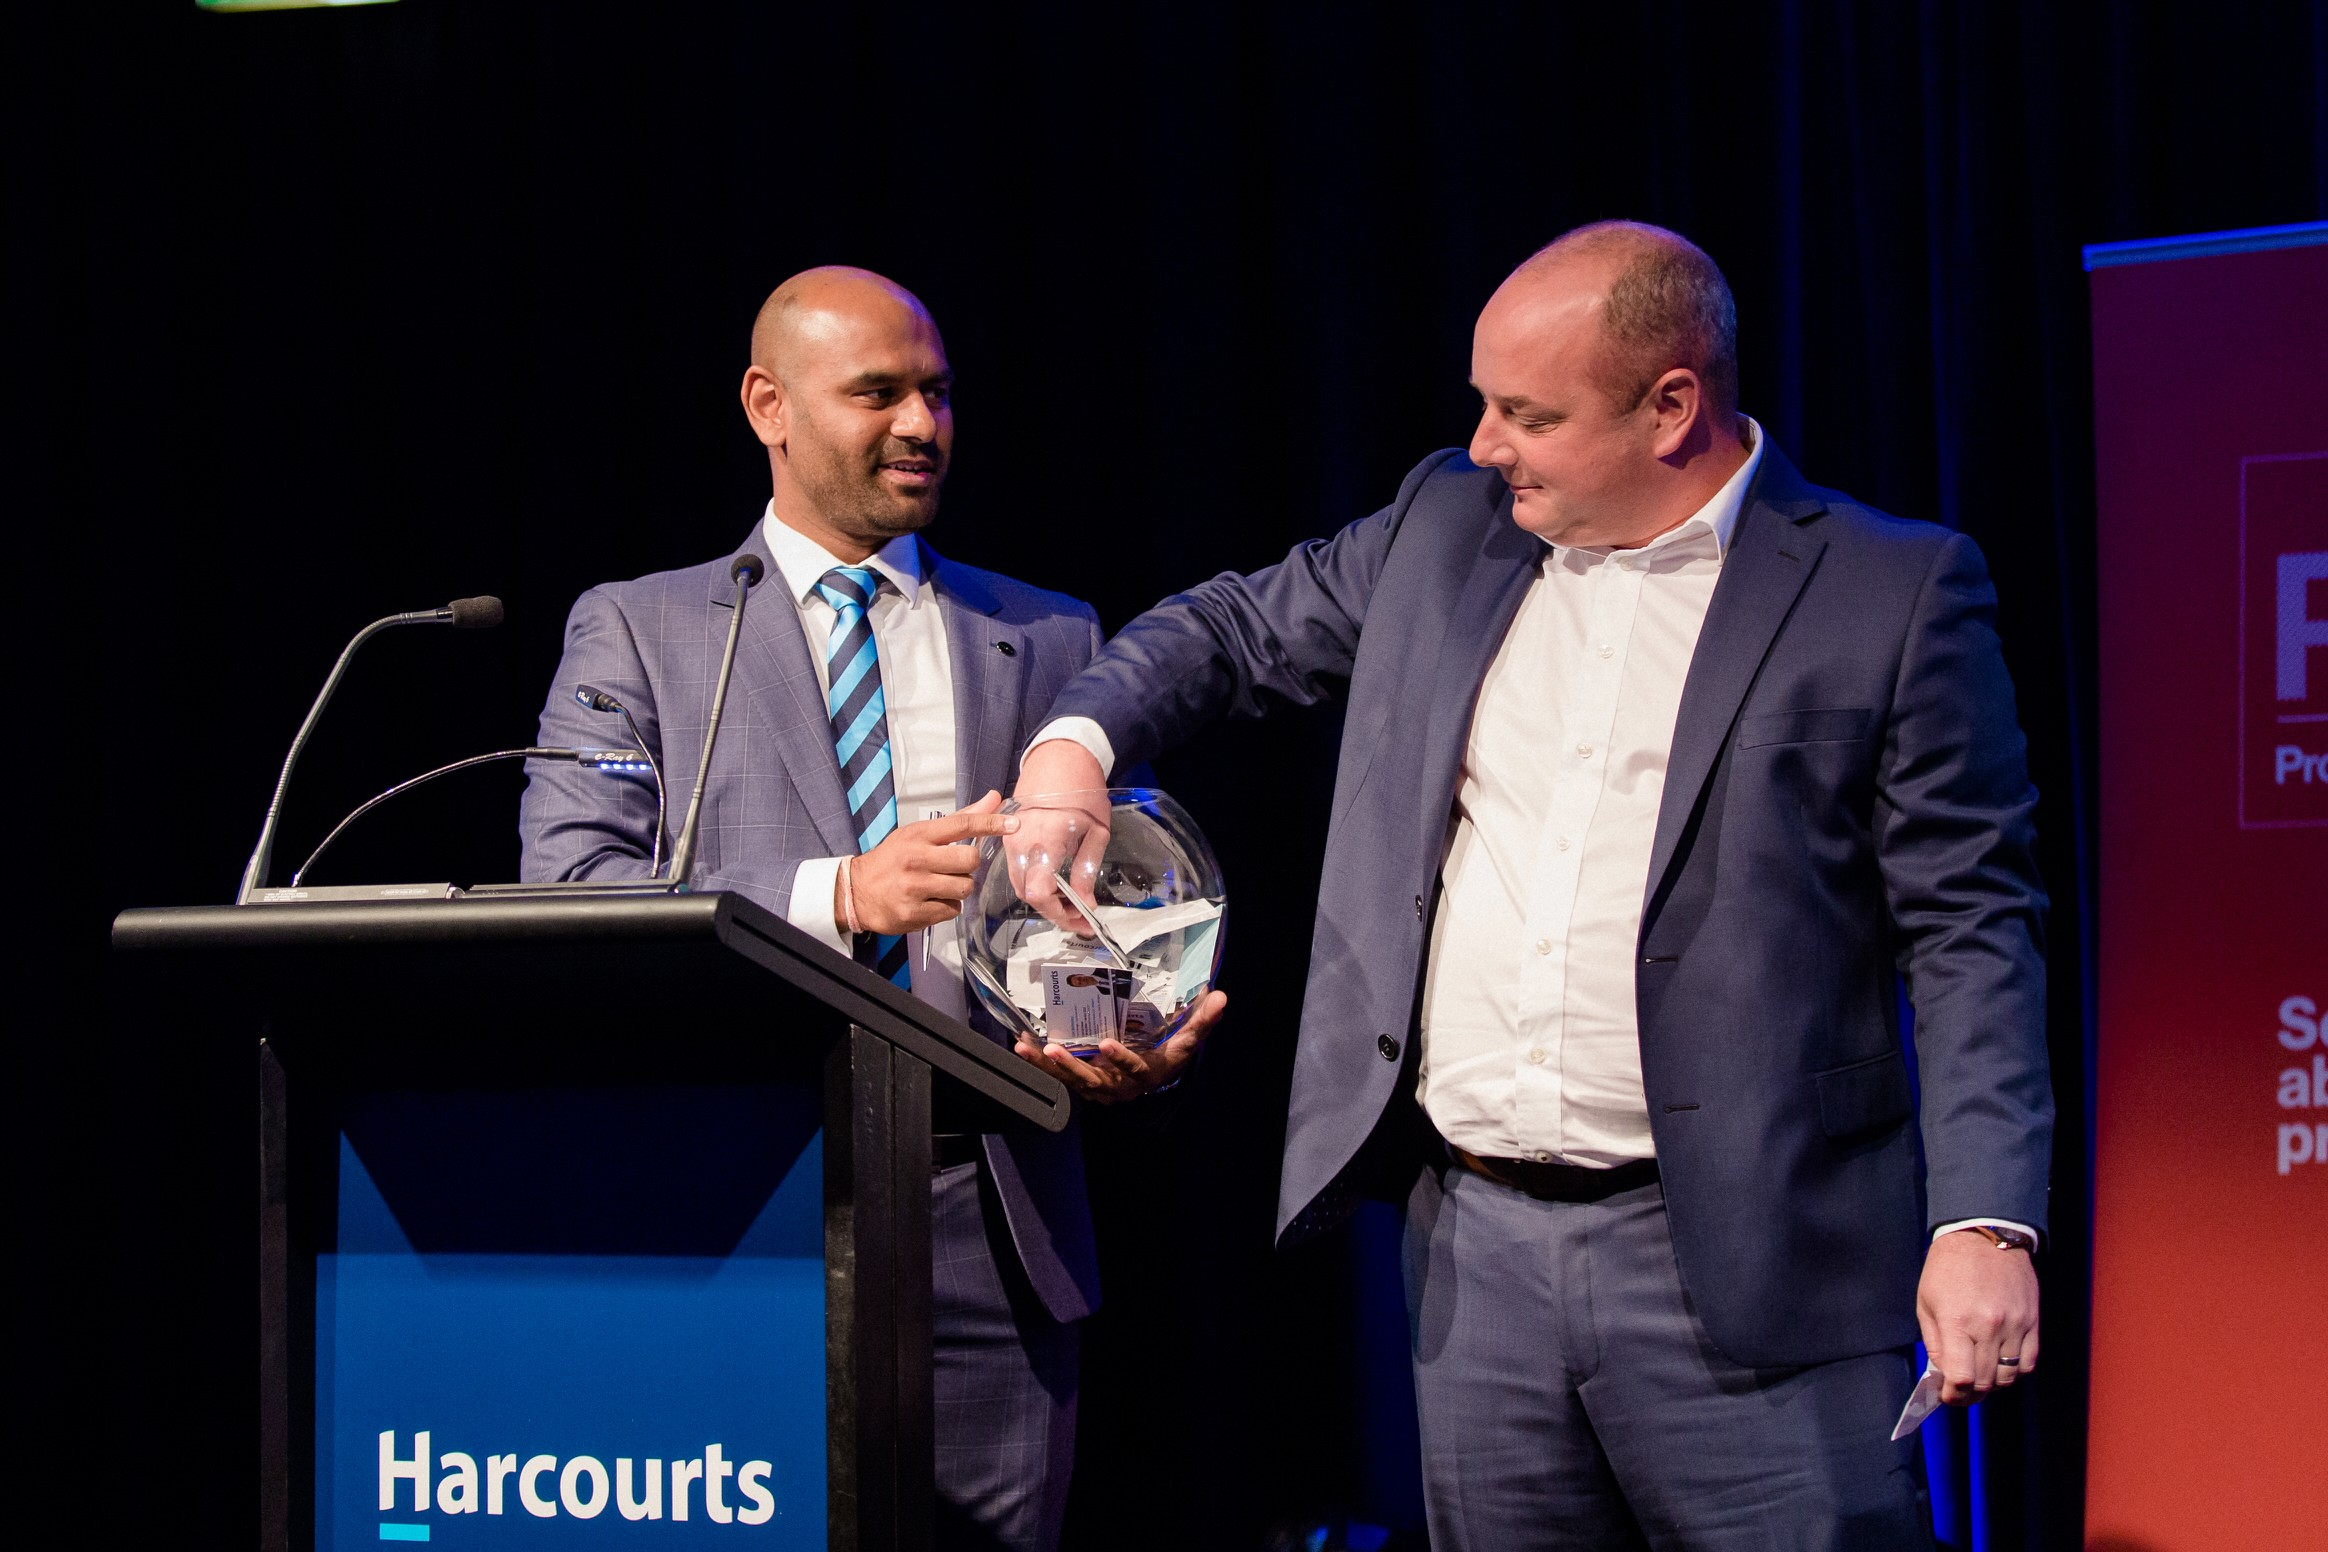 awards harcourts, gala, dinner event, auckland